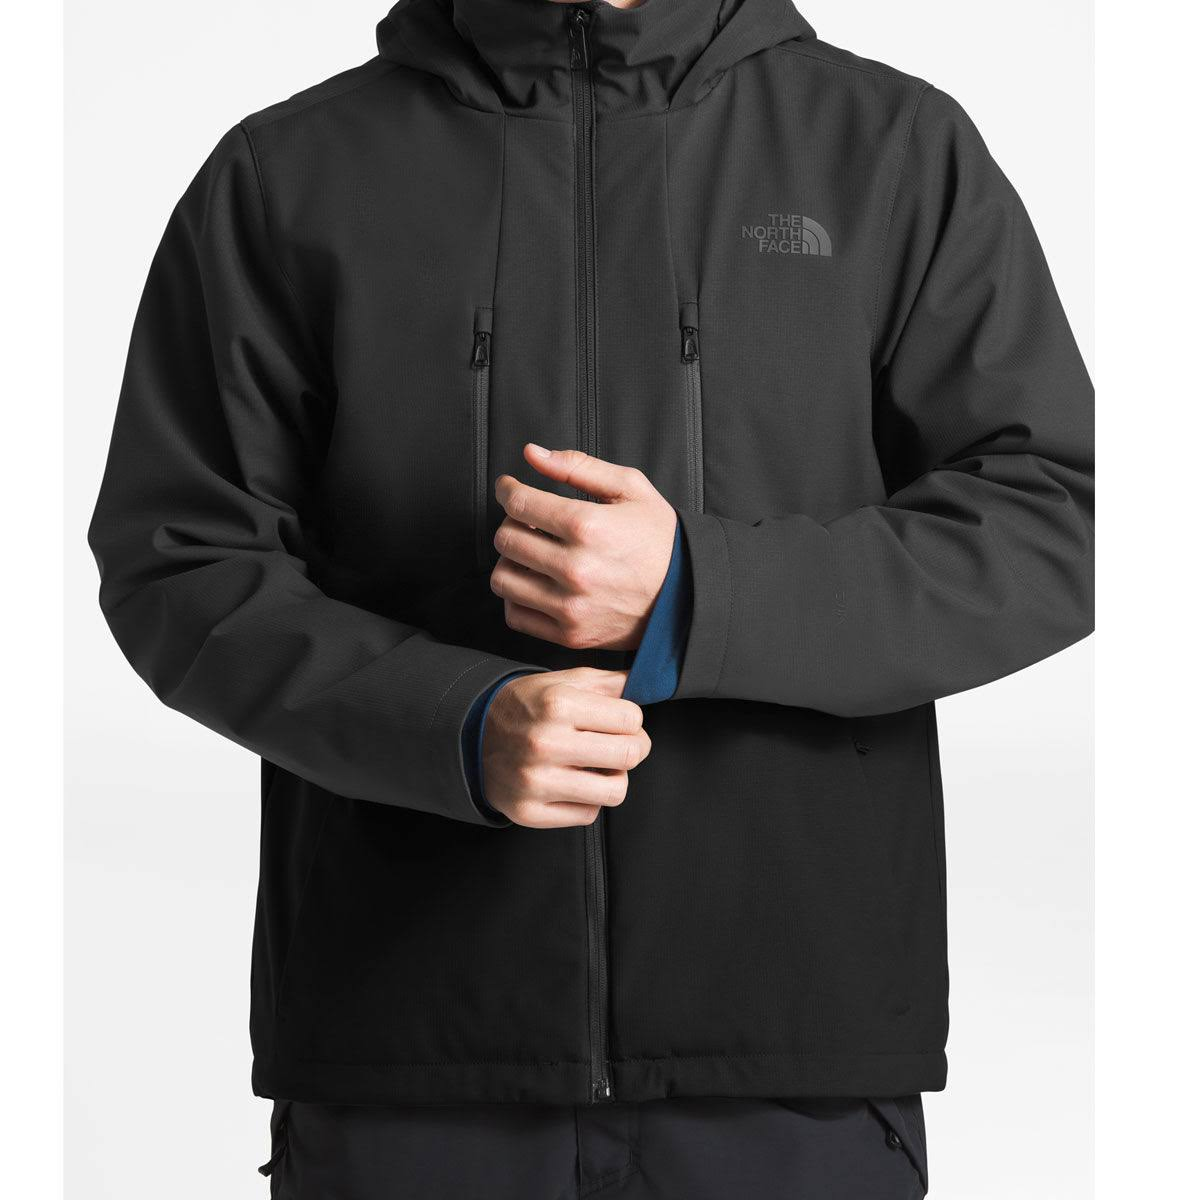 Asphalt amp; The Gray Hombre Tnf Elevation Apex Chaqueta North Face Para Black 0zqFBF